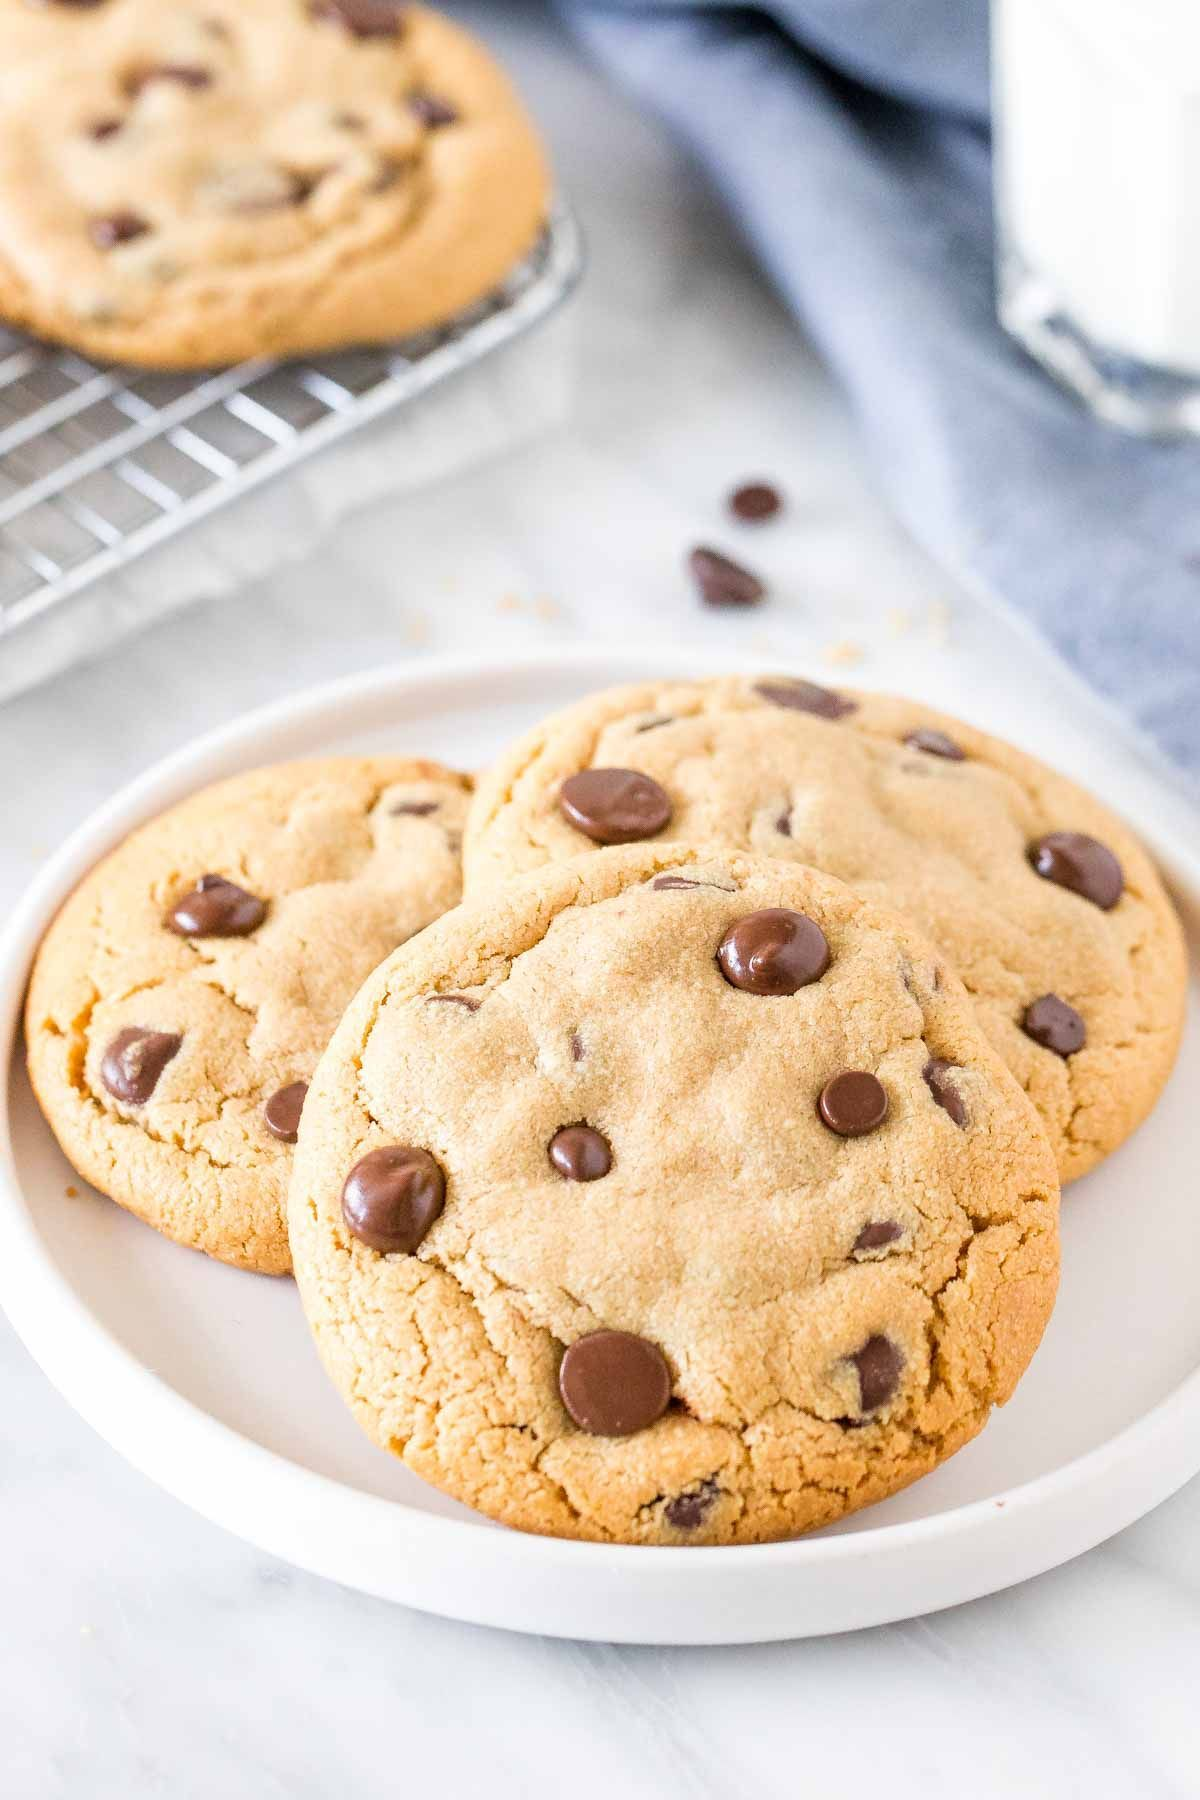 Peanut Butter Chocolate Chip Cookies Recipe Peanut Butter Chocolate Chip Cookies Chocolate Chip Cookies Cookie Recipes